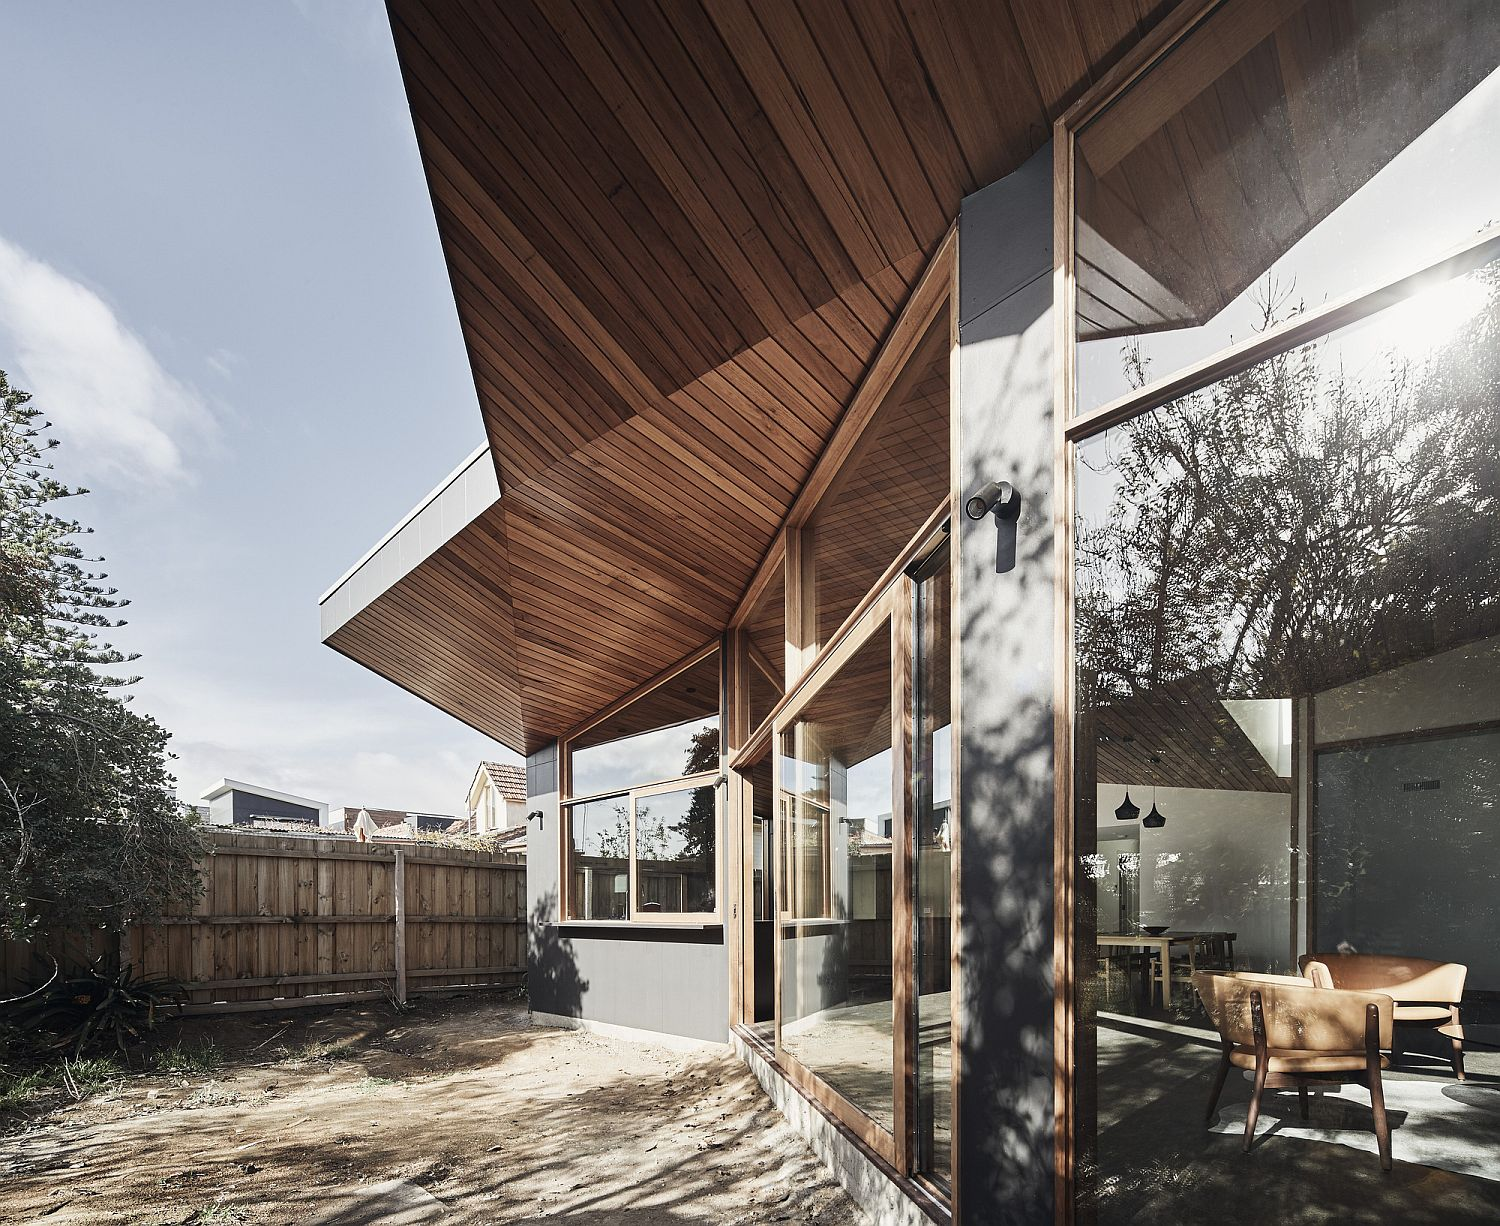 Glass, wood and stylish design elements create a gorgeous rear extension